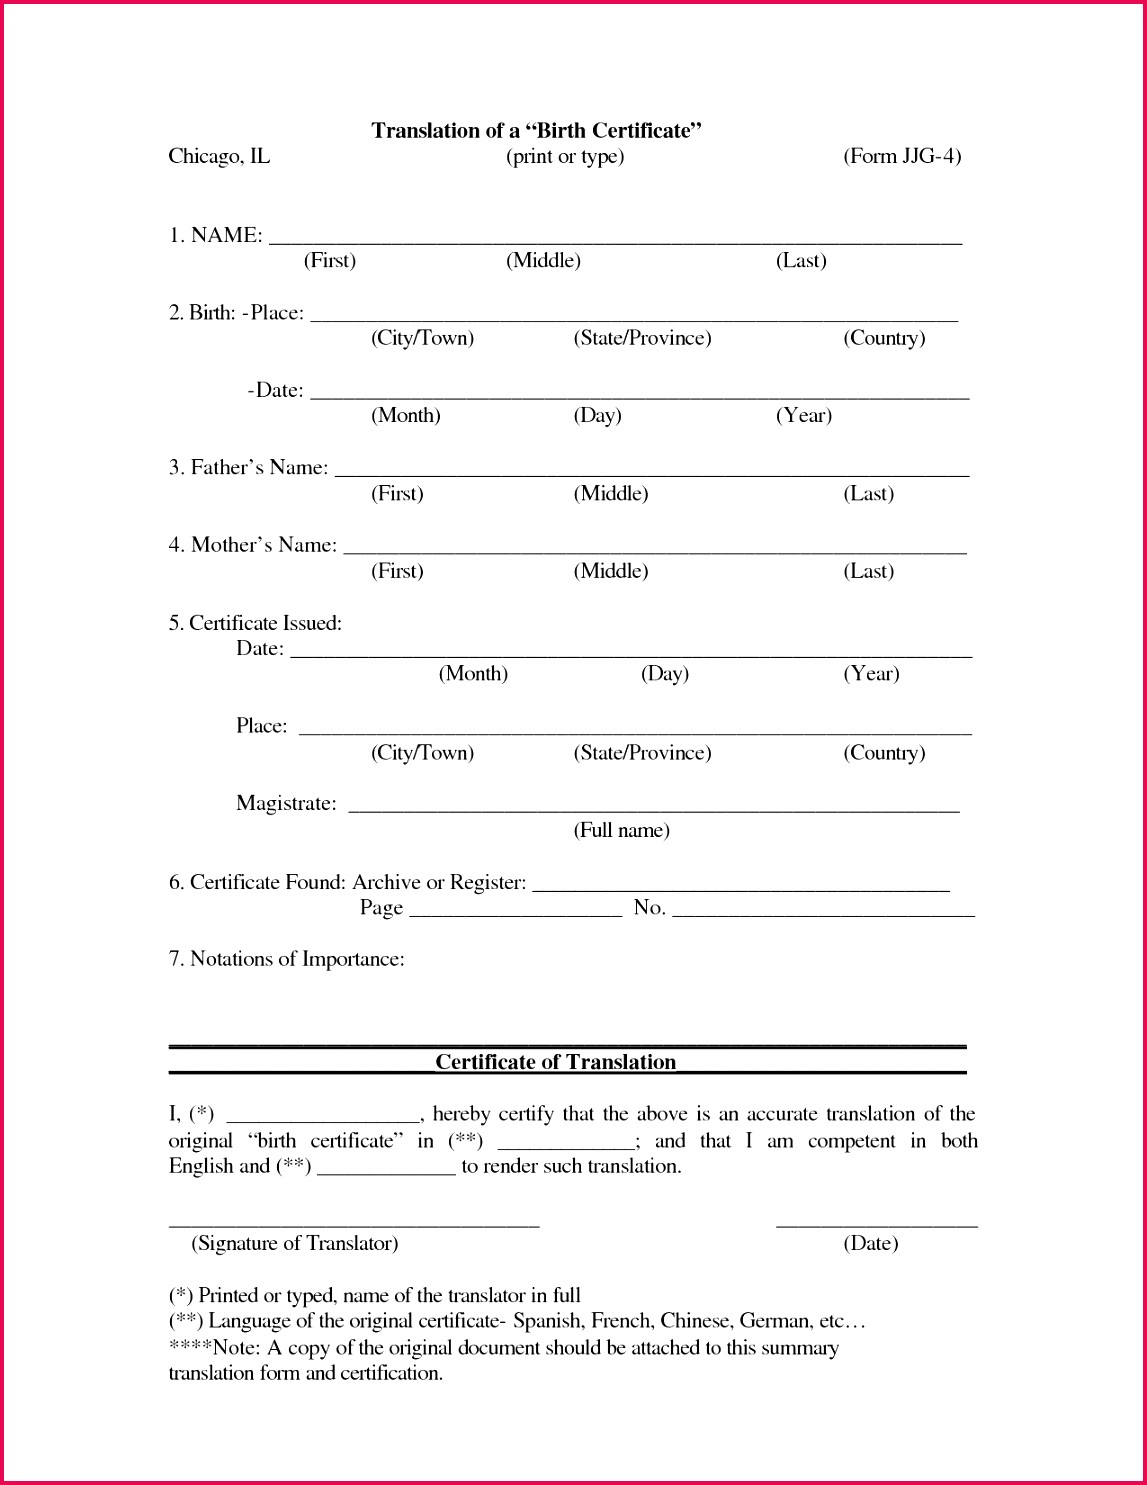 4 Chinese Marriage Certificate Translation Sample 01895 intended for Awesome Marriage Certificate Translation Template